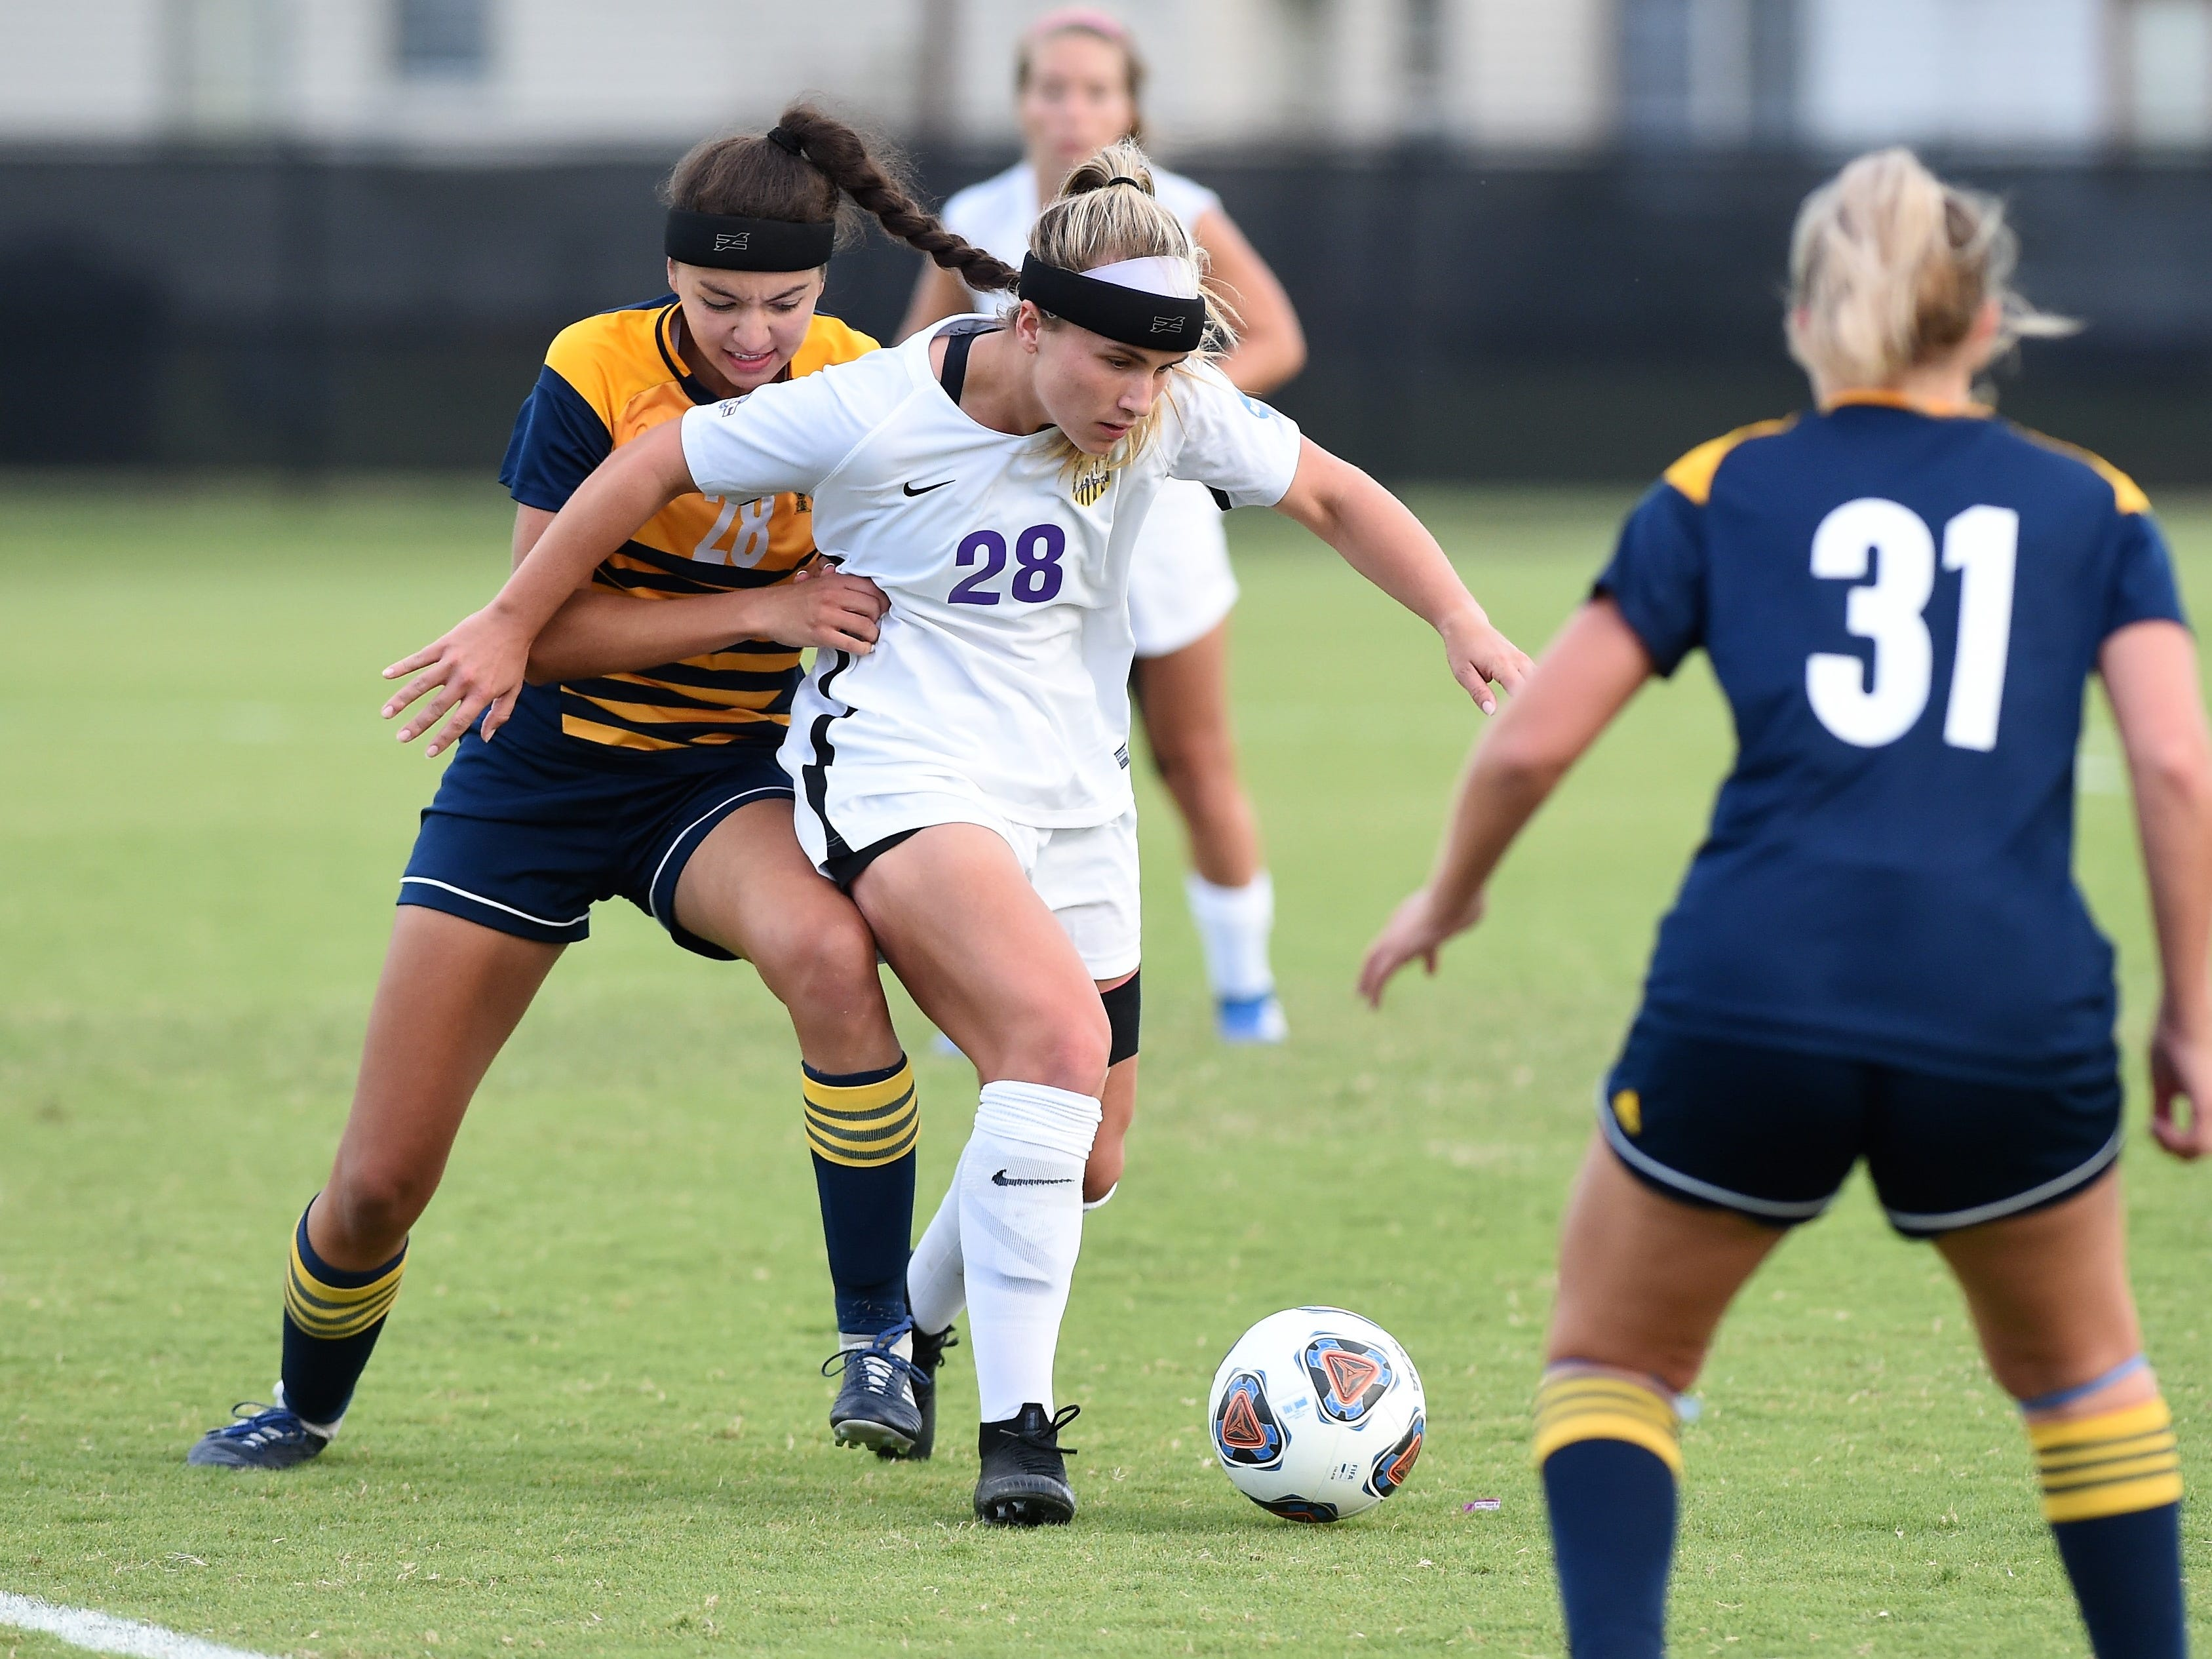 Hardin-Simmons midfielder Kenne Kessler (28) gets away from the grasp of Howard Payne's Leah Gordish (28) at the HSU Soccer Complex on Thursday, Oct. 11, 2018. The Cowgirls won 4-1.